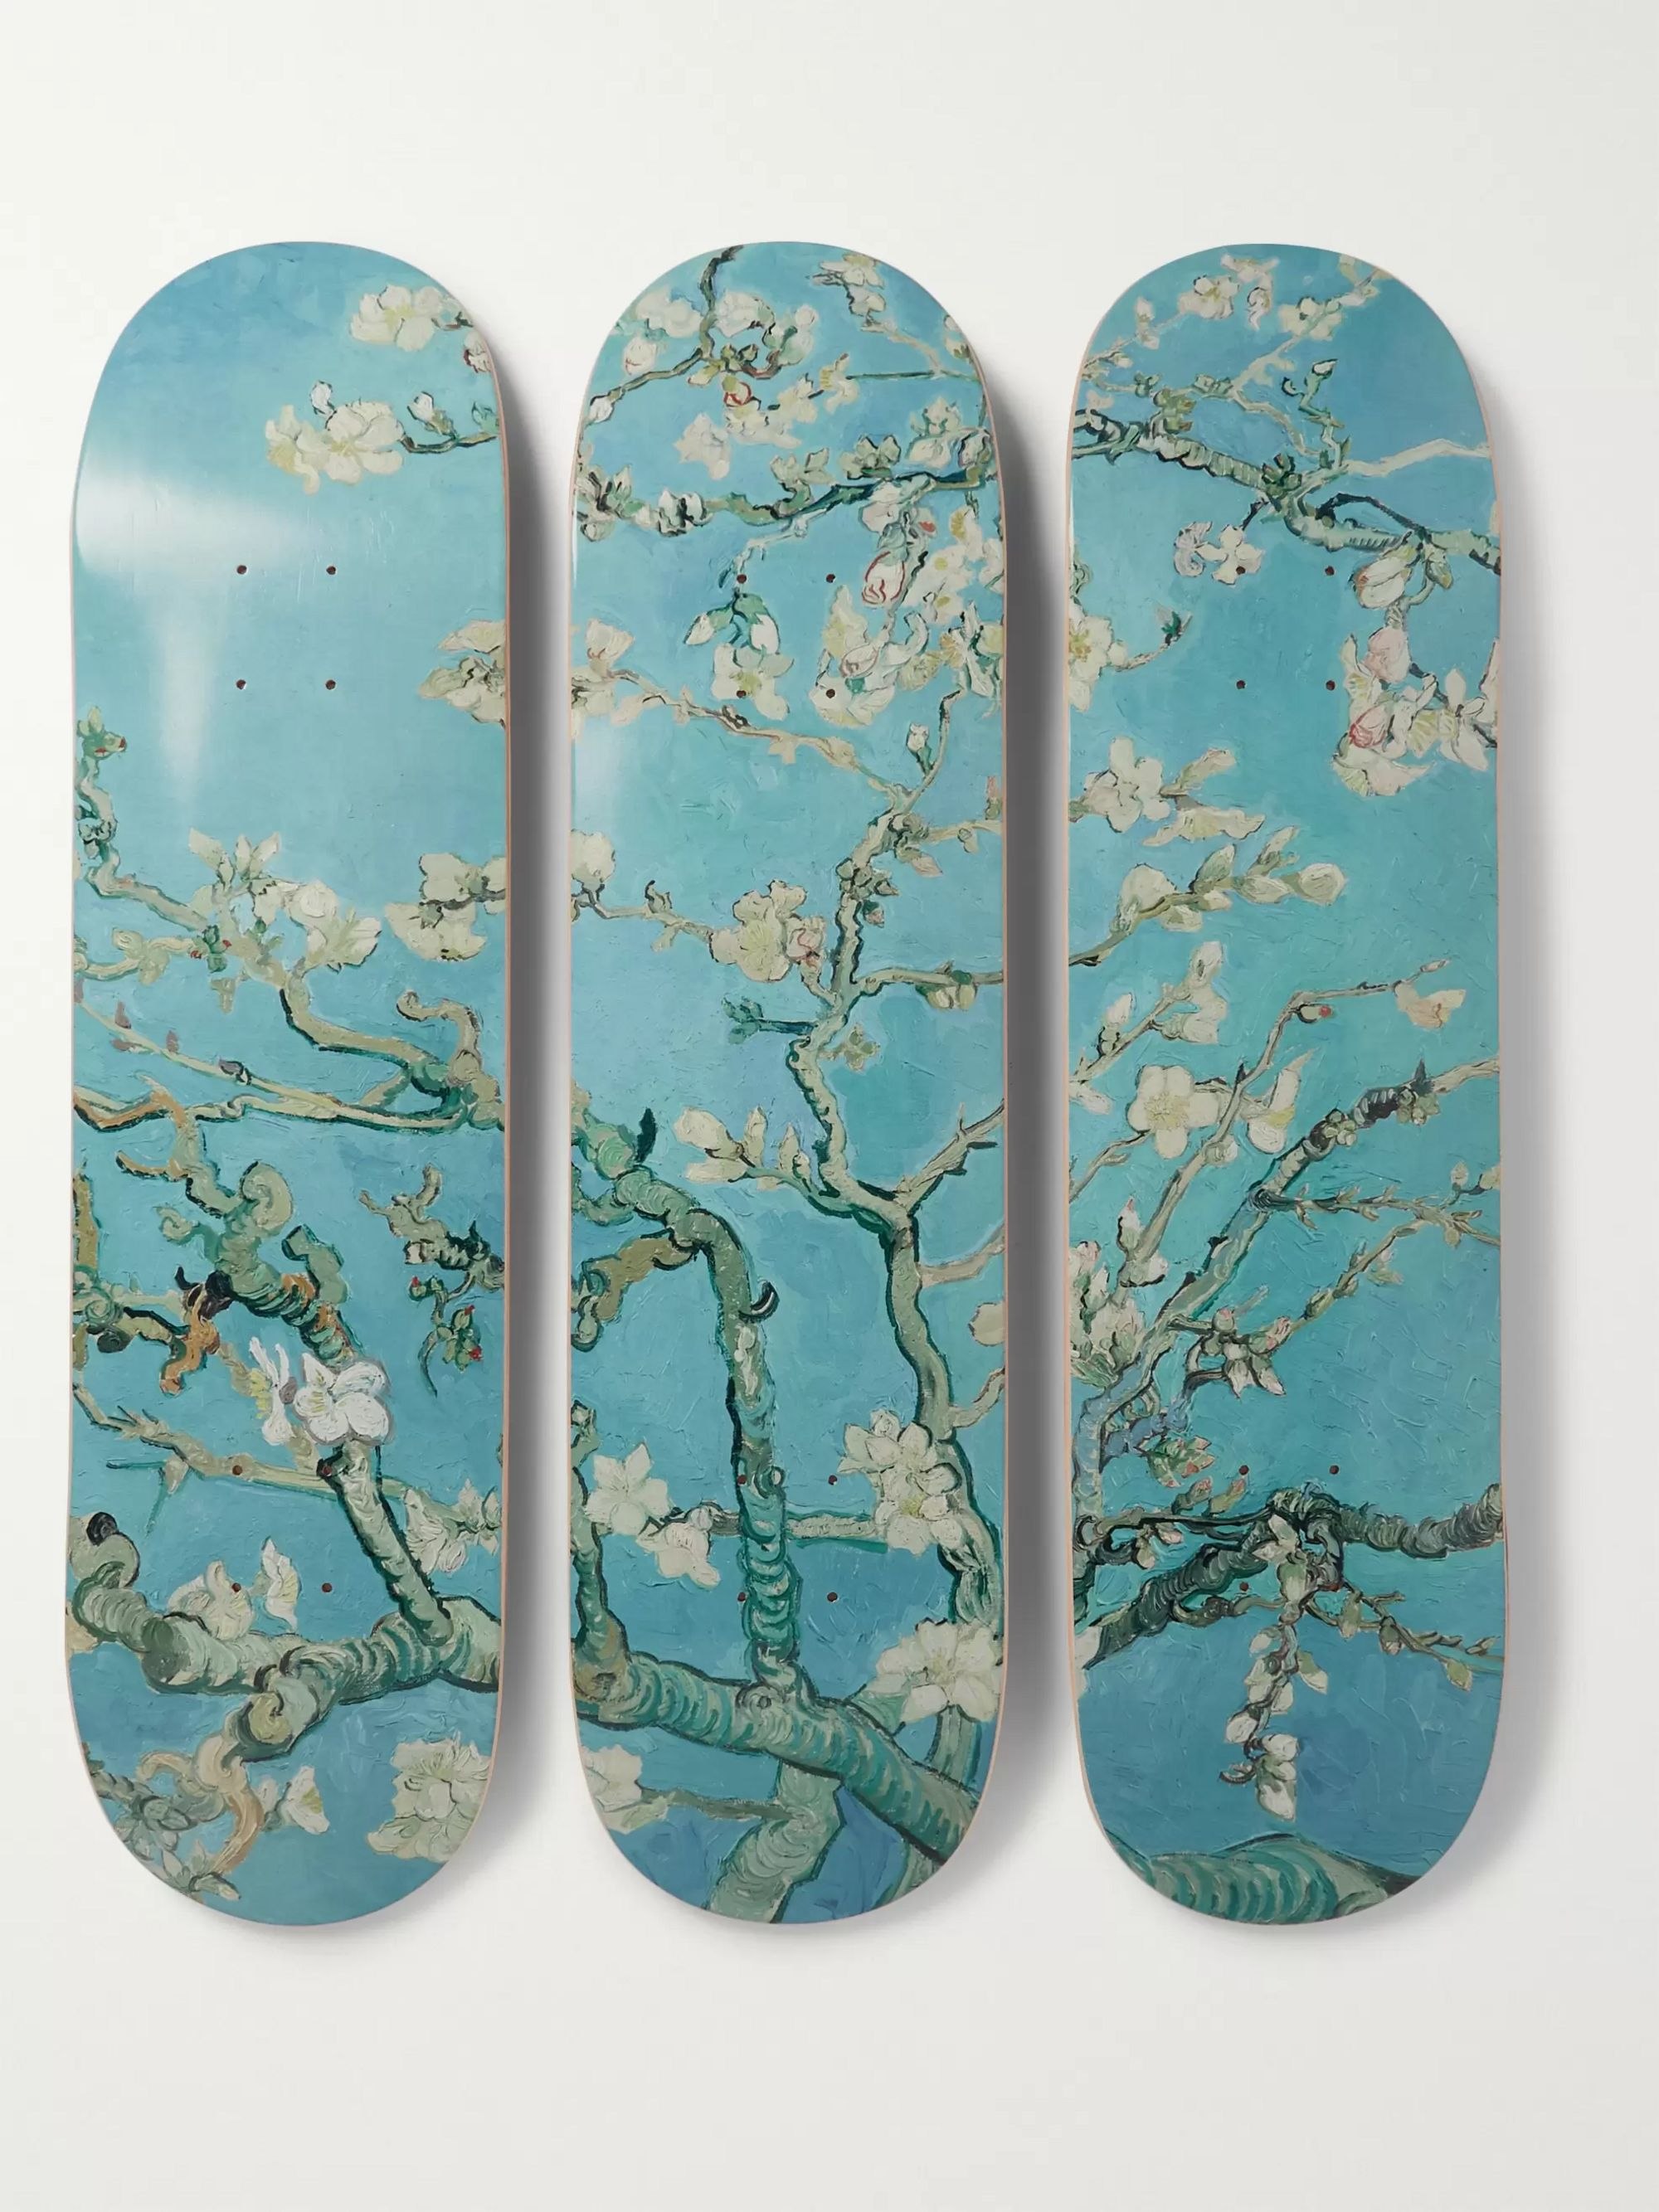 The SkateRoom + Vincent Van Gogh Set of Three Printed Skateboards